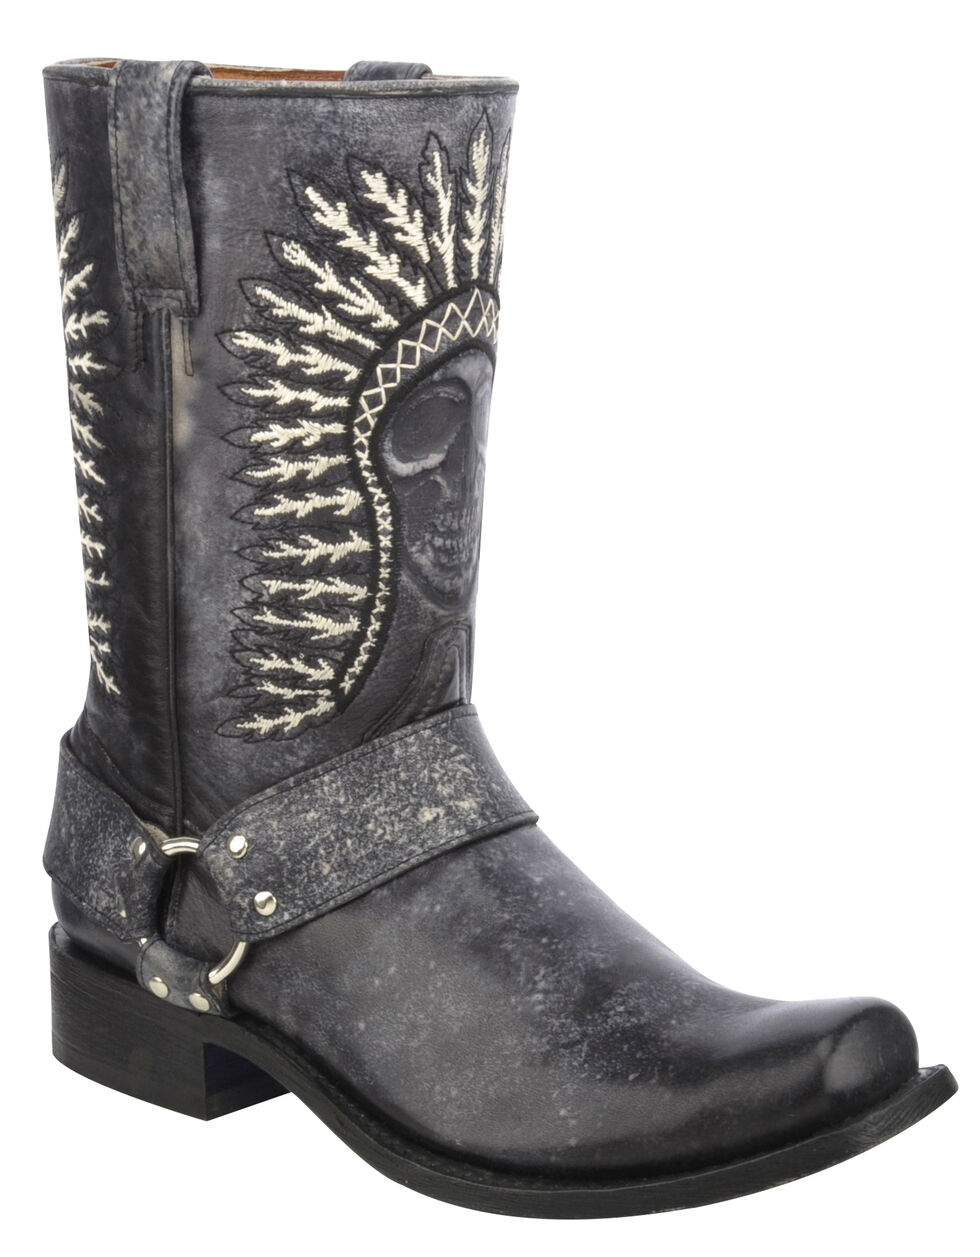 Corral Shaded Skull Harness Cowboy Boots - Square Toe, Black, hi-res